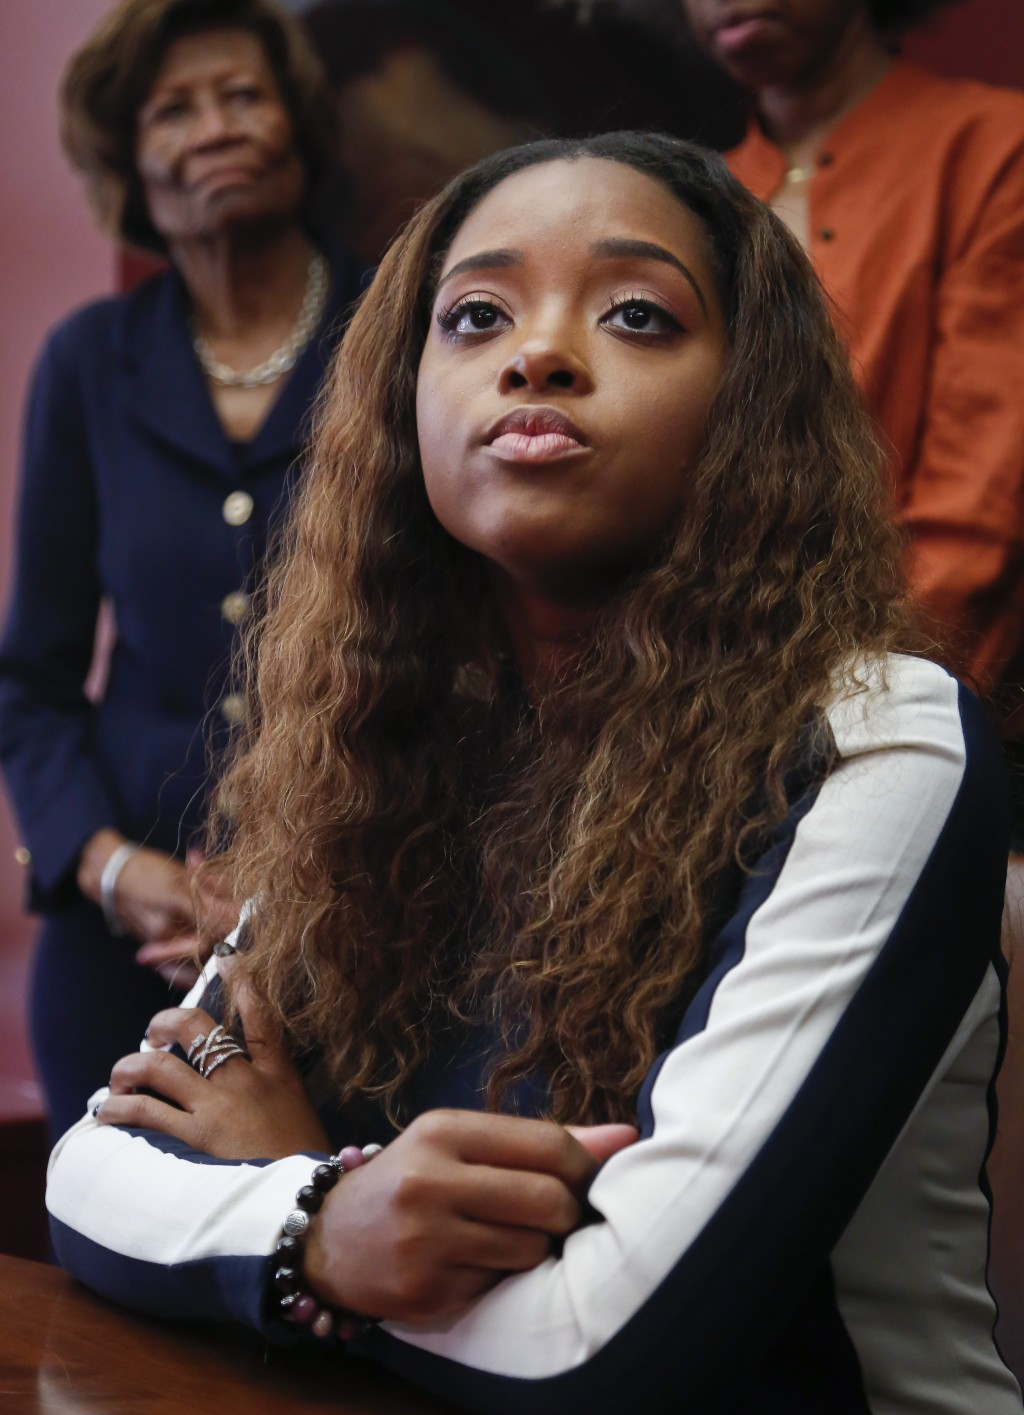 FILE - This Oct. 17, 2017, file photo shows civil rights leader and activist Tamika Mallory during a news conference in New York. Conflicts over contr...